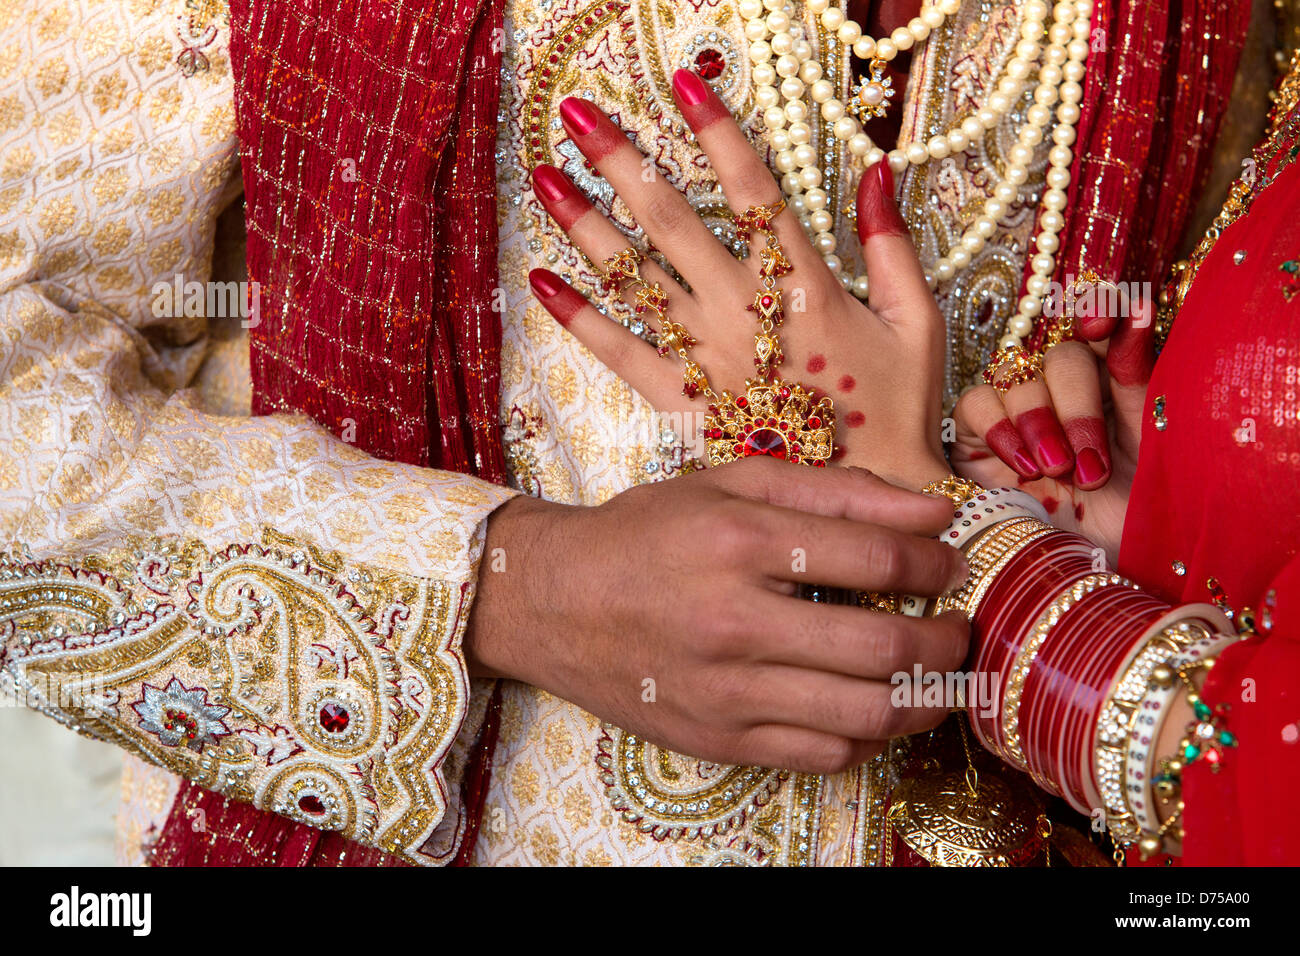 Close Up Of An Indian Bride And Groom In Traditional Wedding Dress Stock Photo Royalty Free